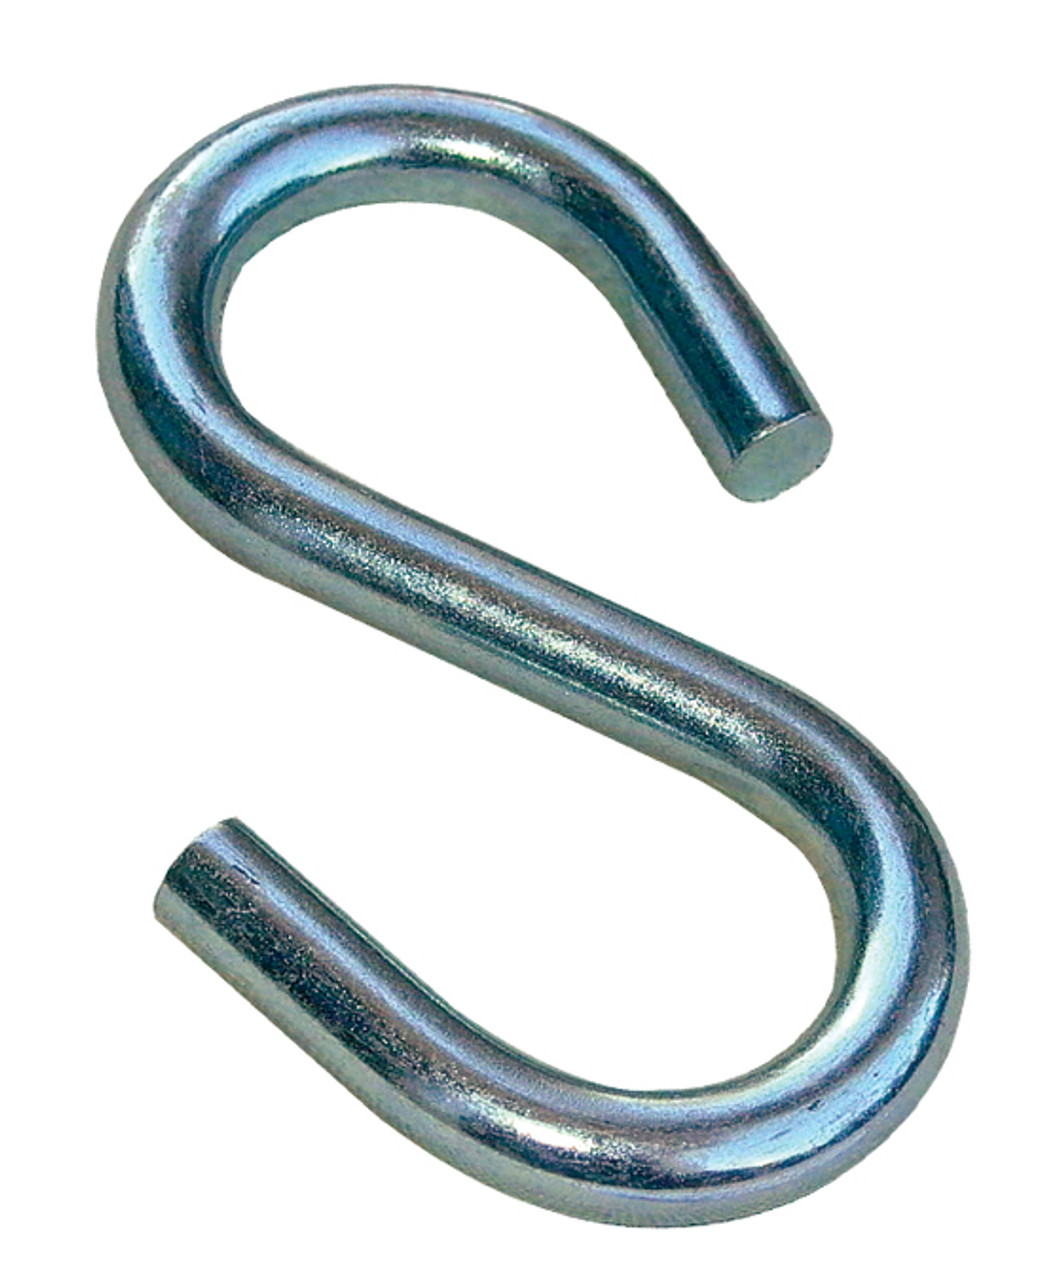 "5/16"" x 4"" Zinc Coated Large End S-Hook"